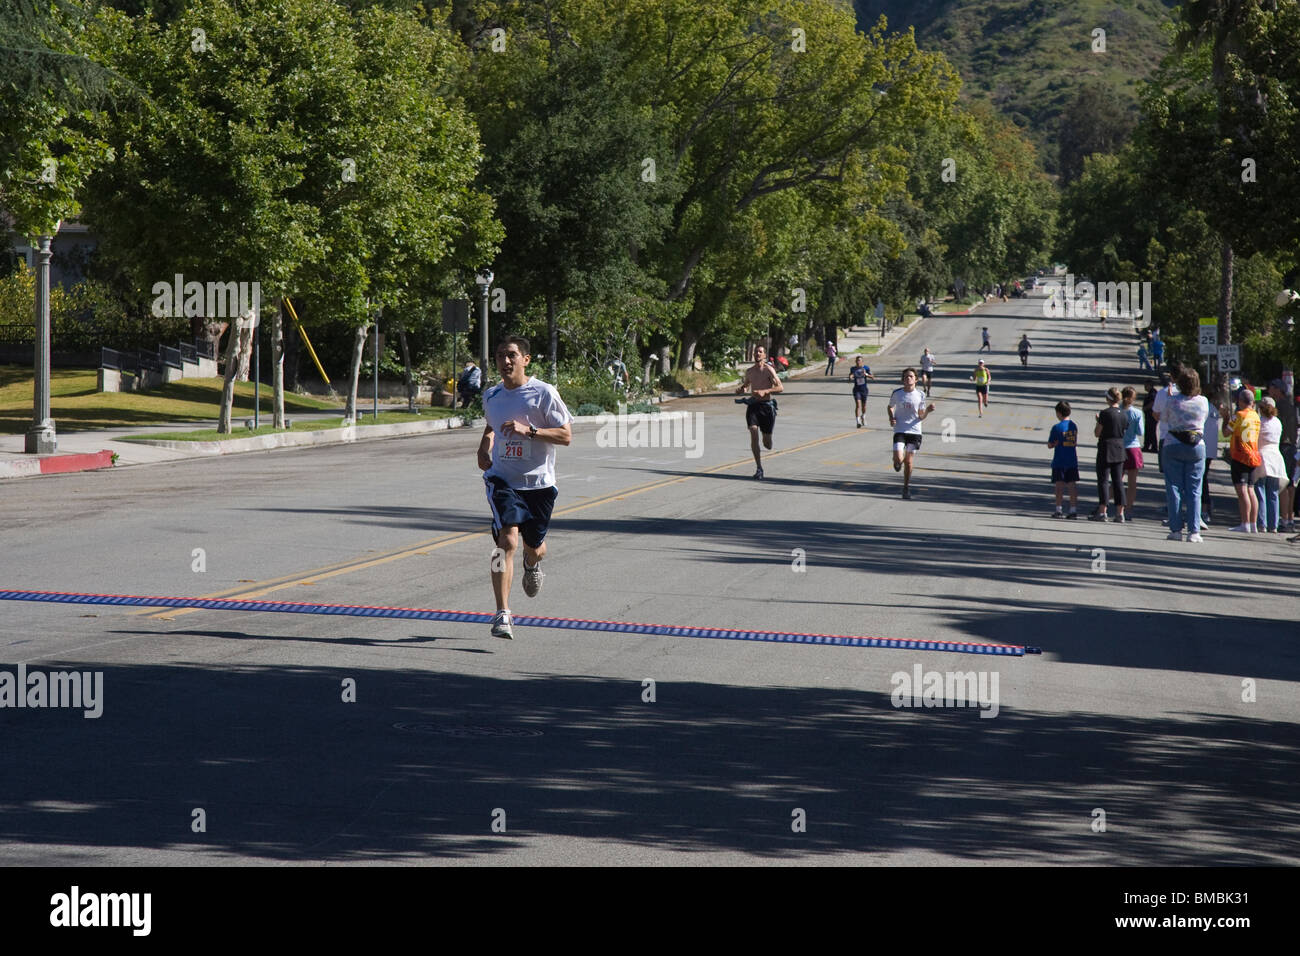 Runners Heading for the Finish Line - Stock Image